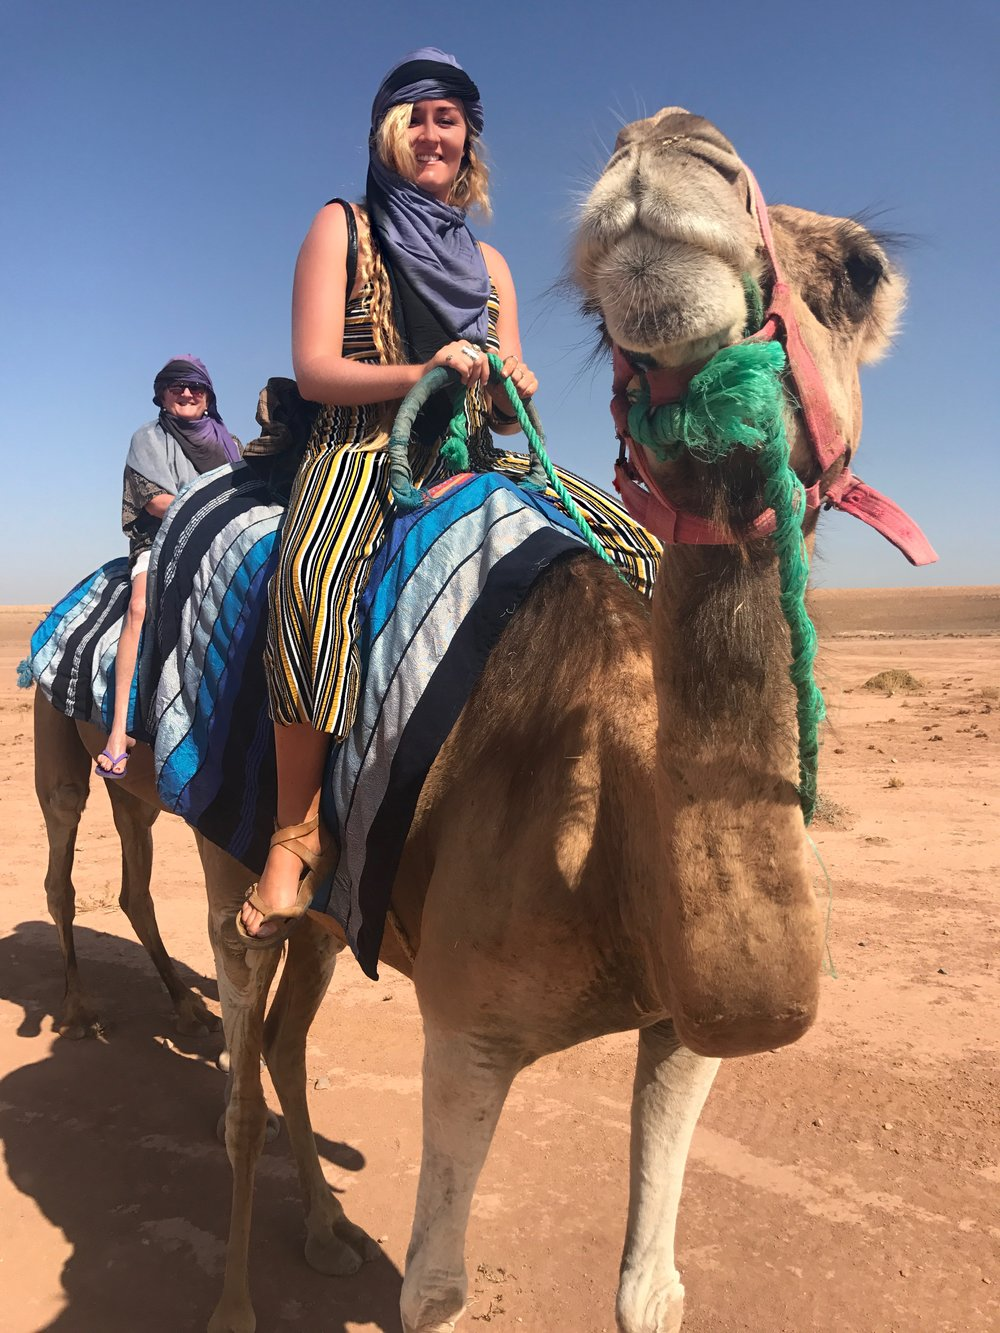 Camel experiences with Dunes & Desert based in Marrakech are fantastic!